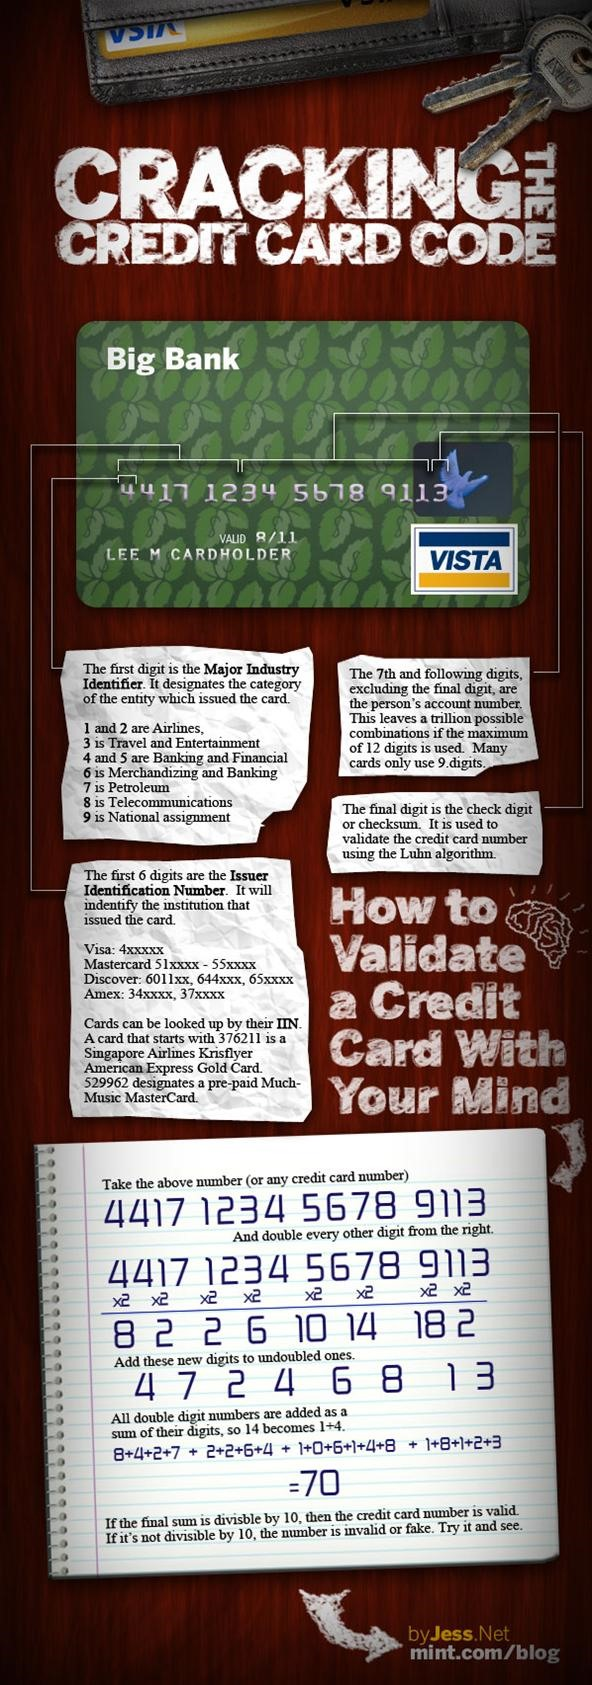 How to Tell Whether a Credit Card Number Is Valid Just by Looking at It